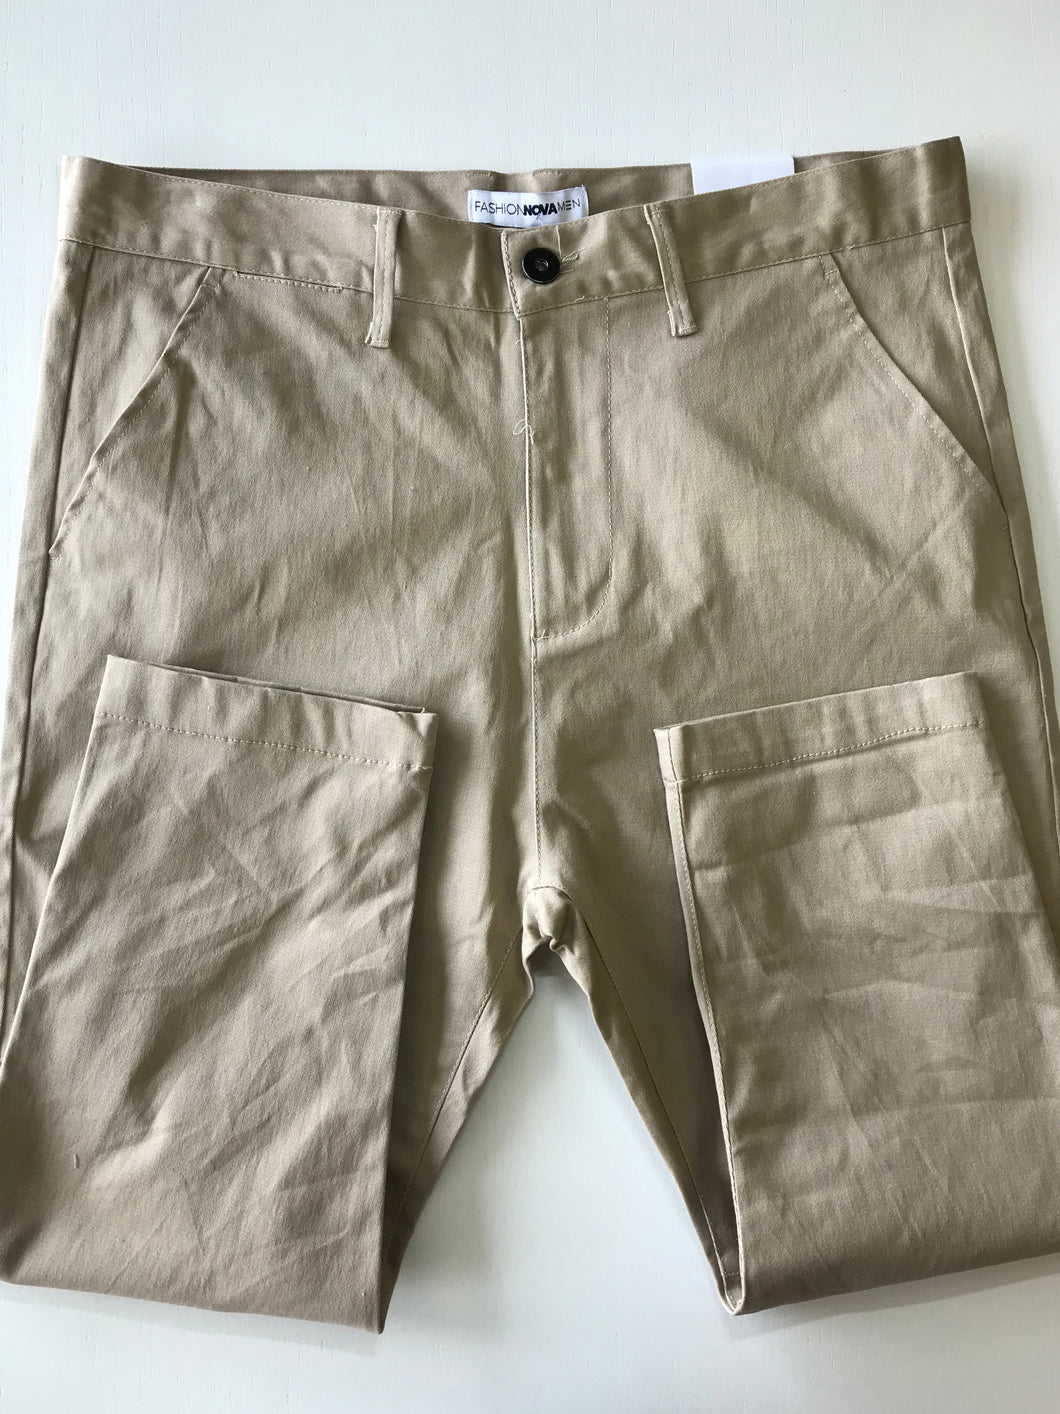 Previously Owned With Tags Guys Fashion Nova Pants Size 36